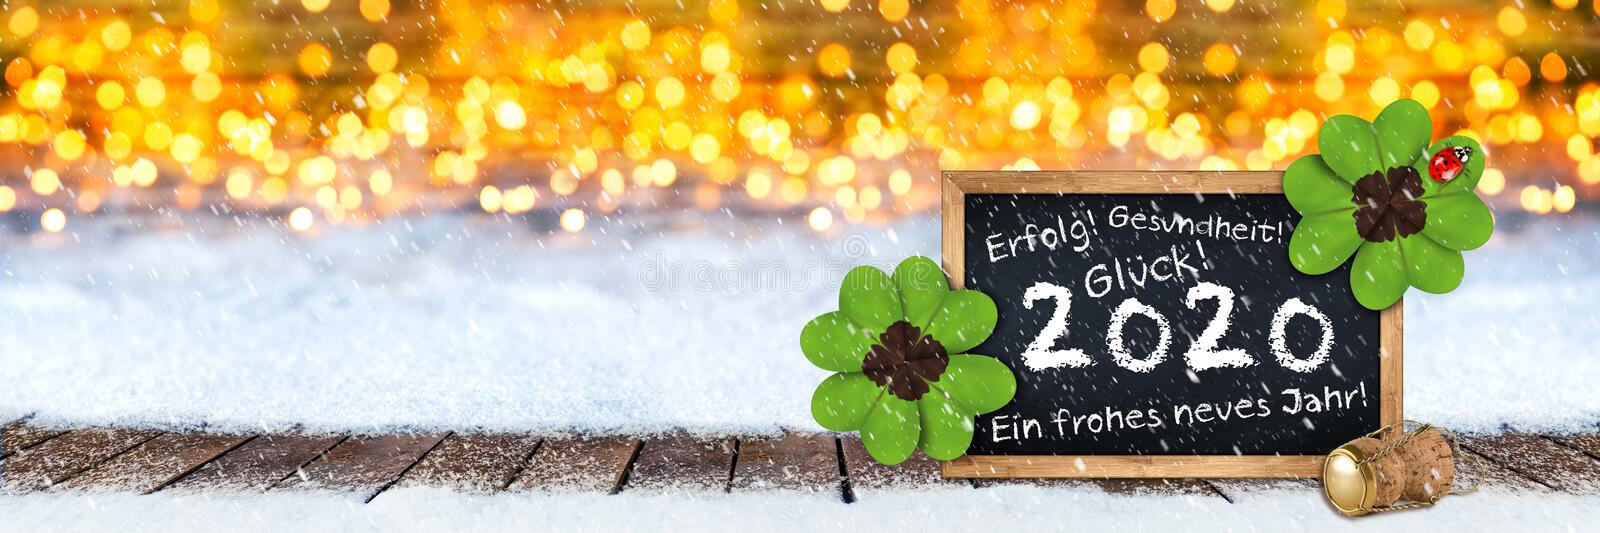 Champagne cork and blackboard with german greeting frohes neues jahr 2020 traduction anglaise: joyeux nouvel an 2020 en bois photos stock